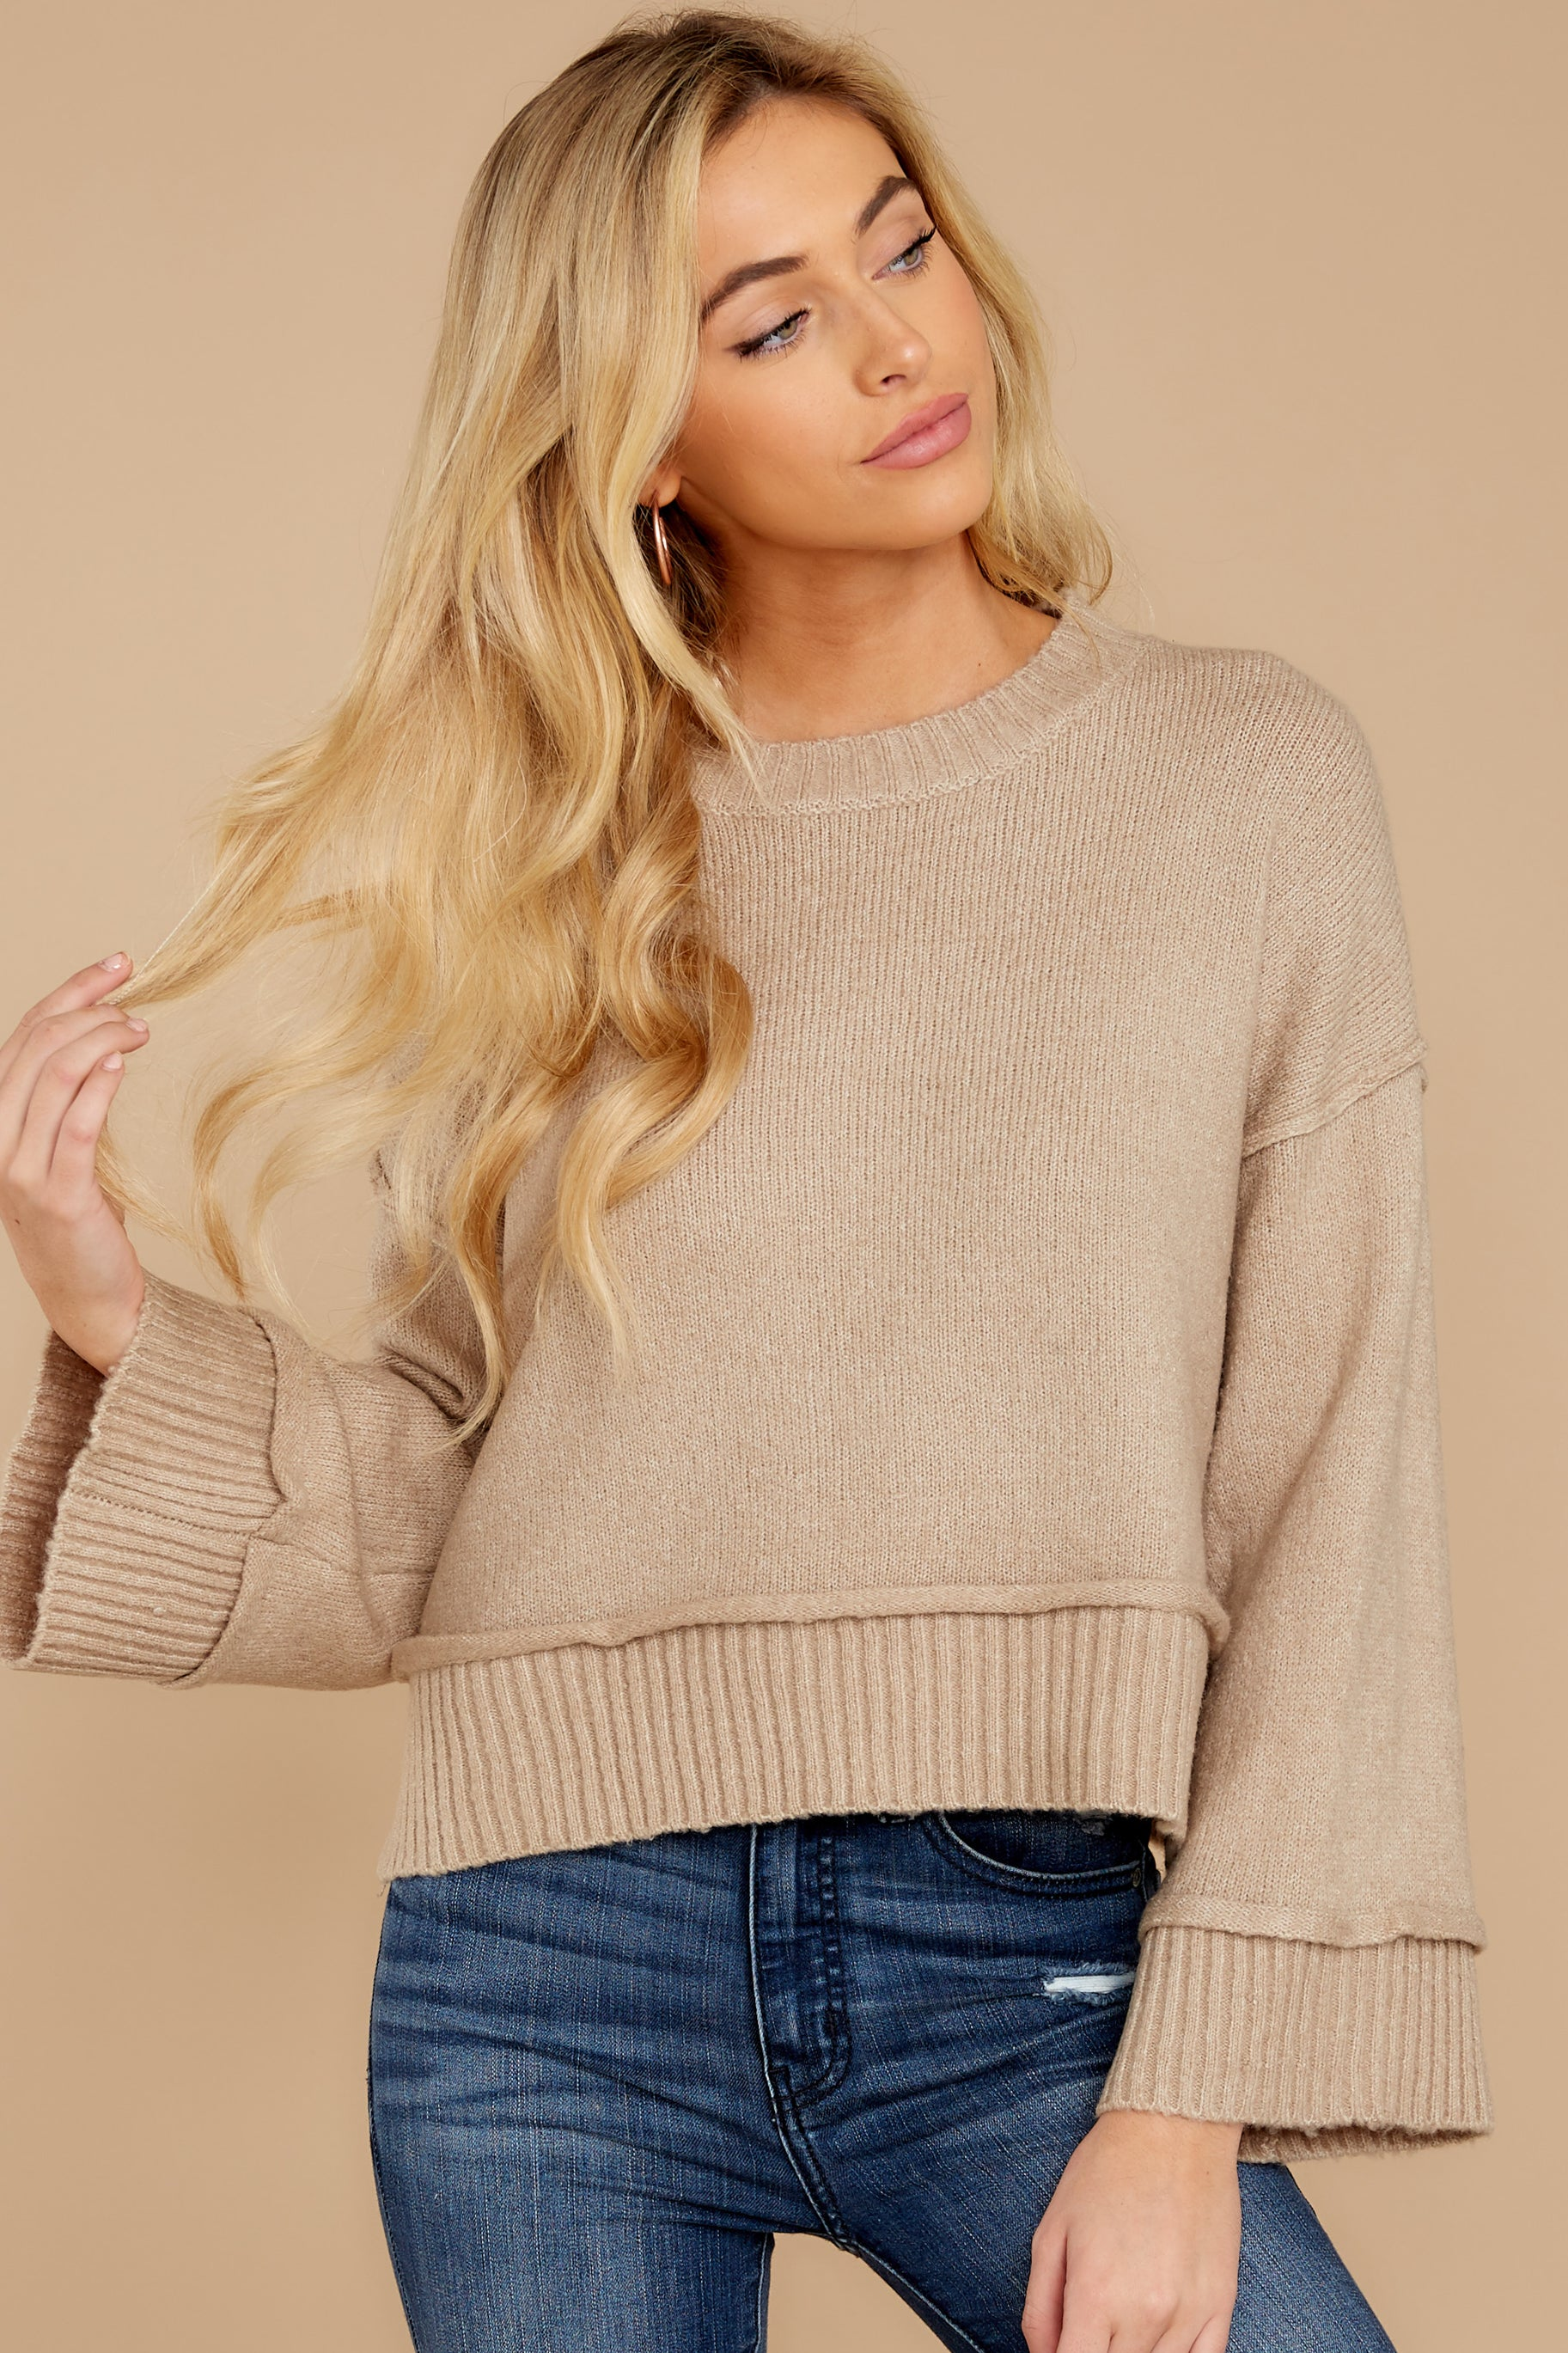 4 Woman About Town Warm Taupe Sweater at reddressboutique.com